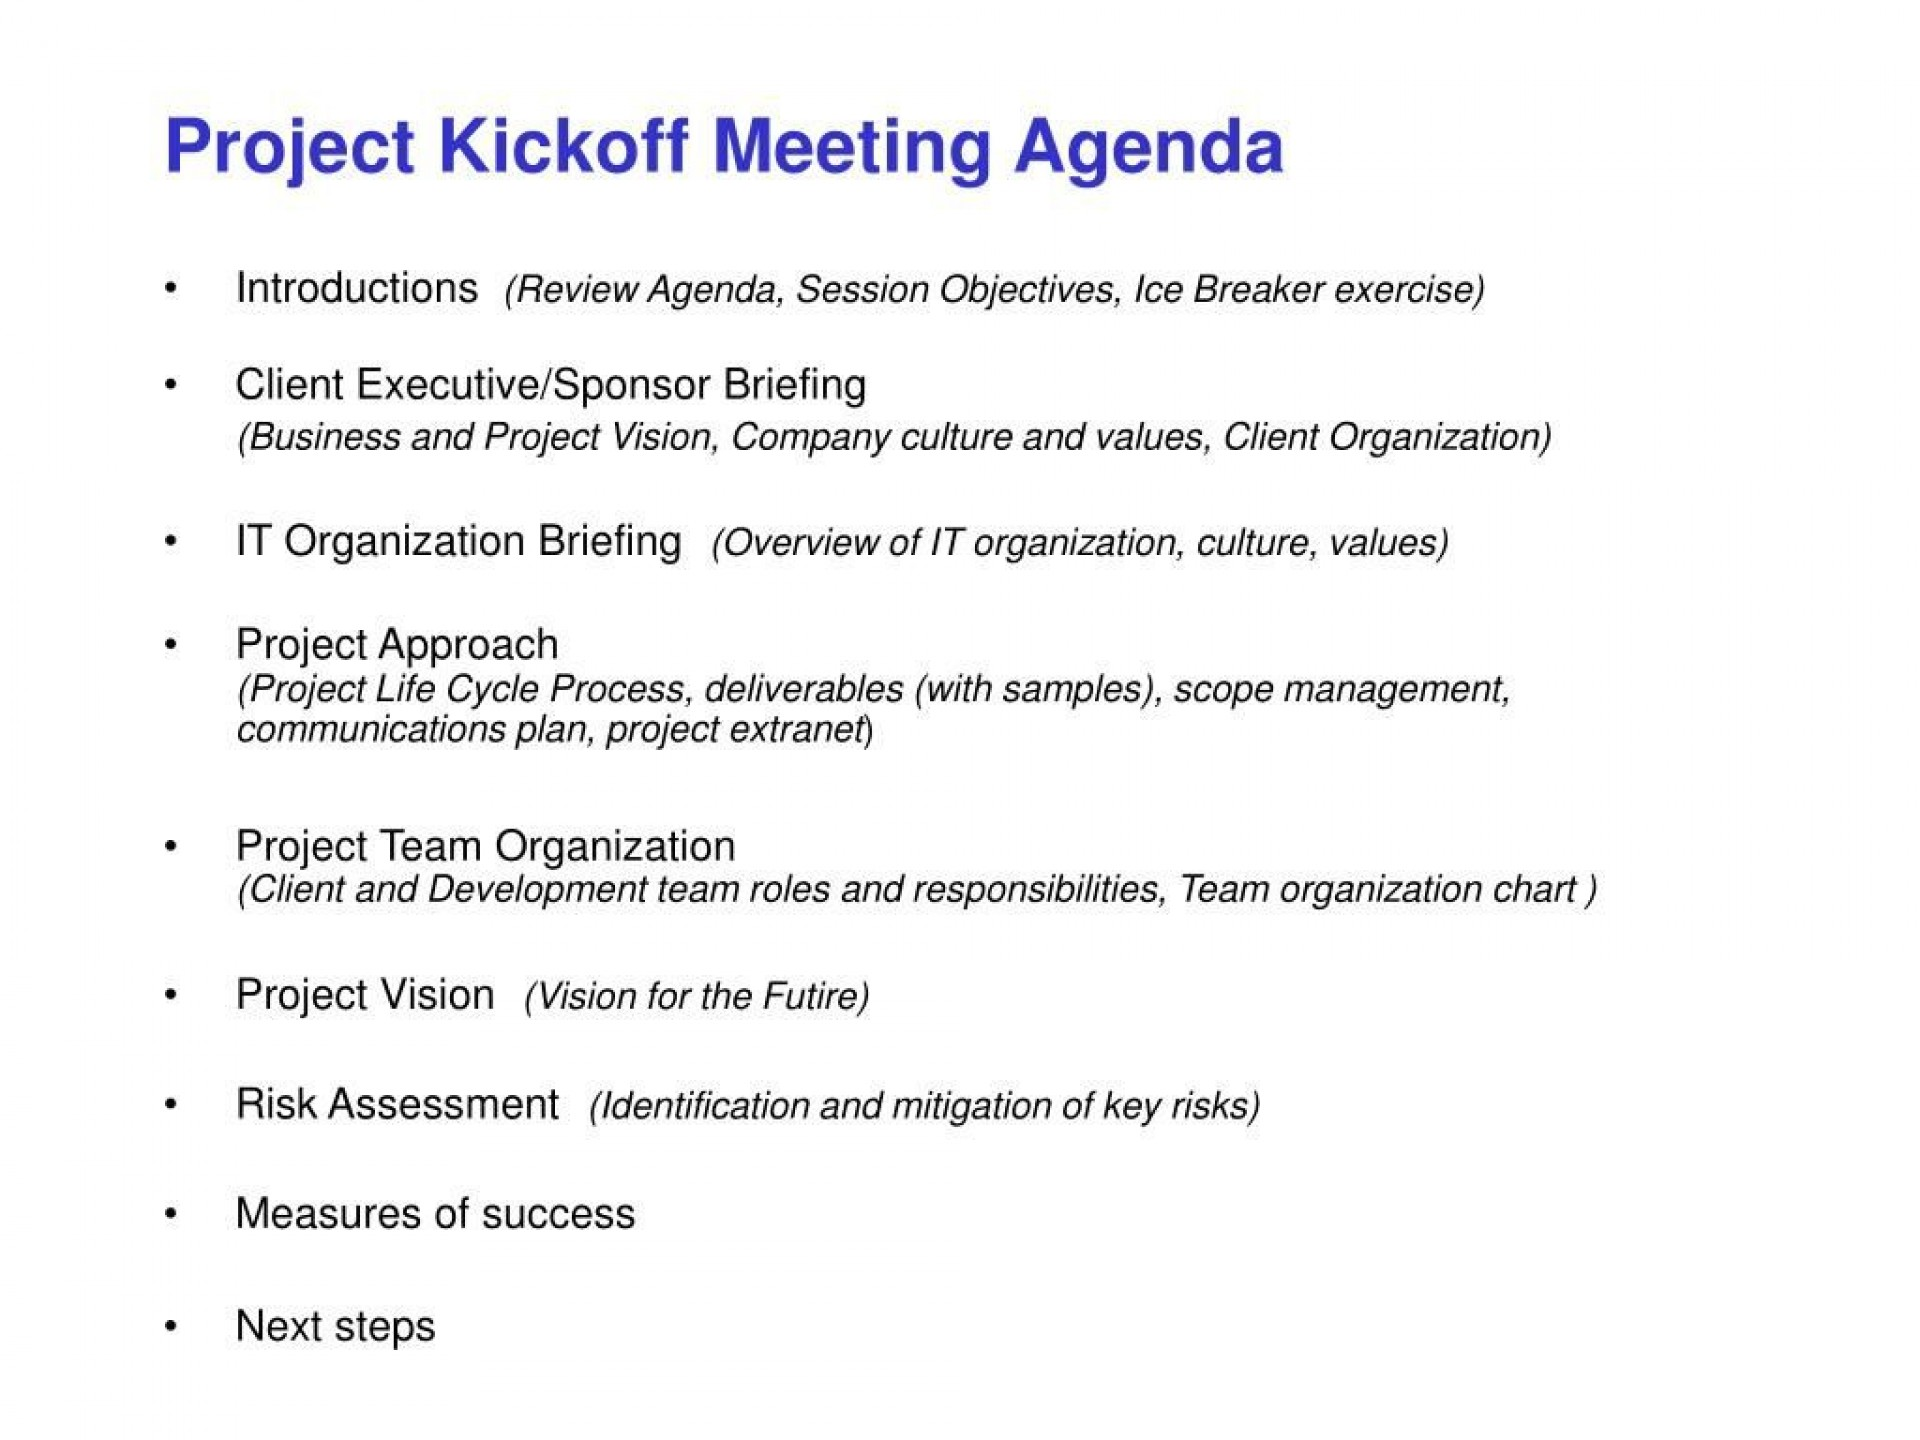 008 Fearsome Project Kickoff Meeting Template Image  Management Agenda Construction Doc Email1920